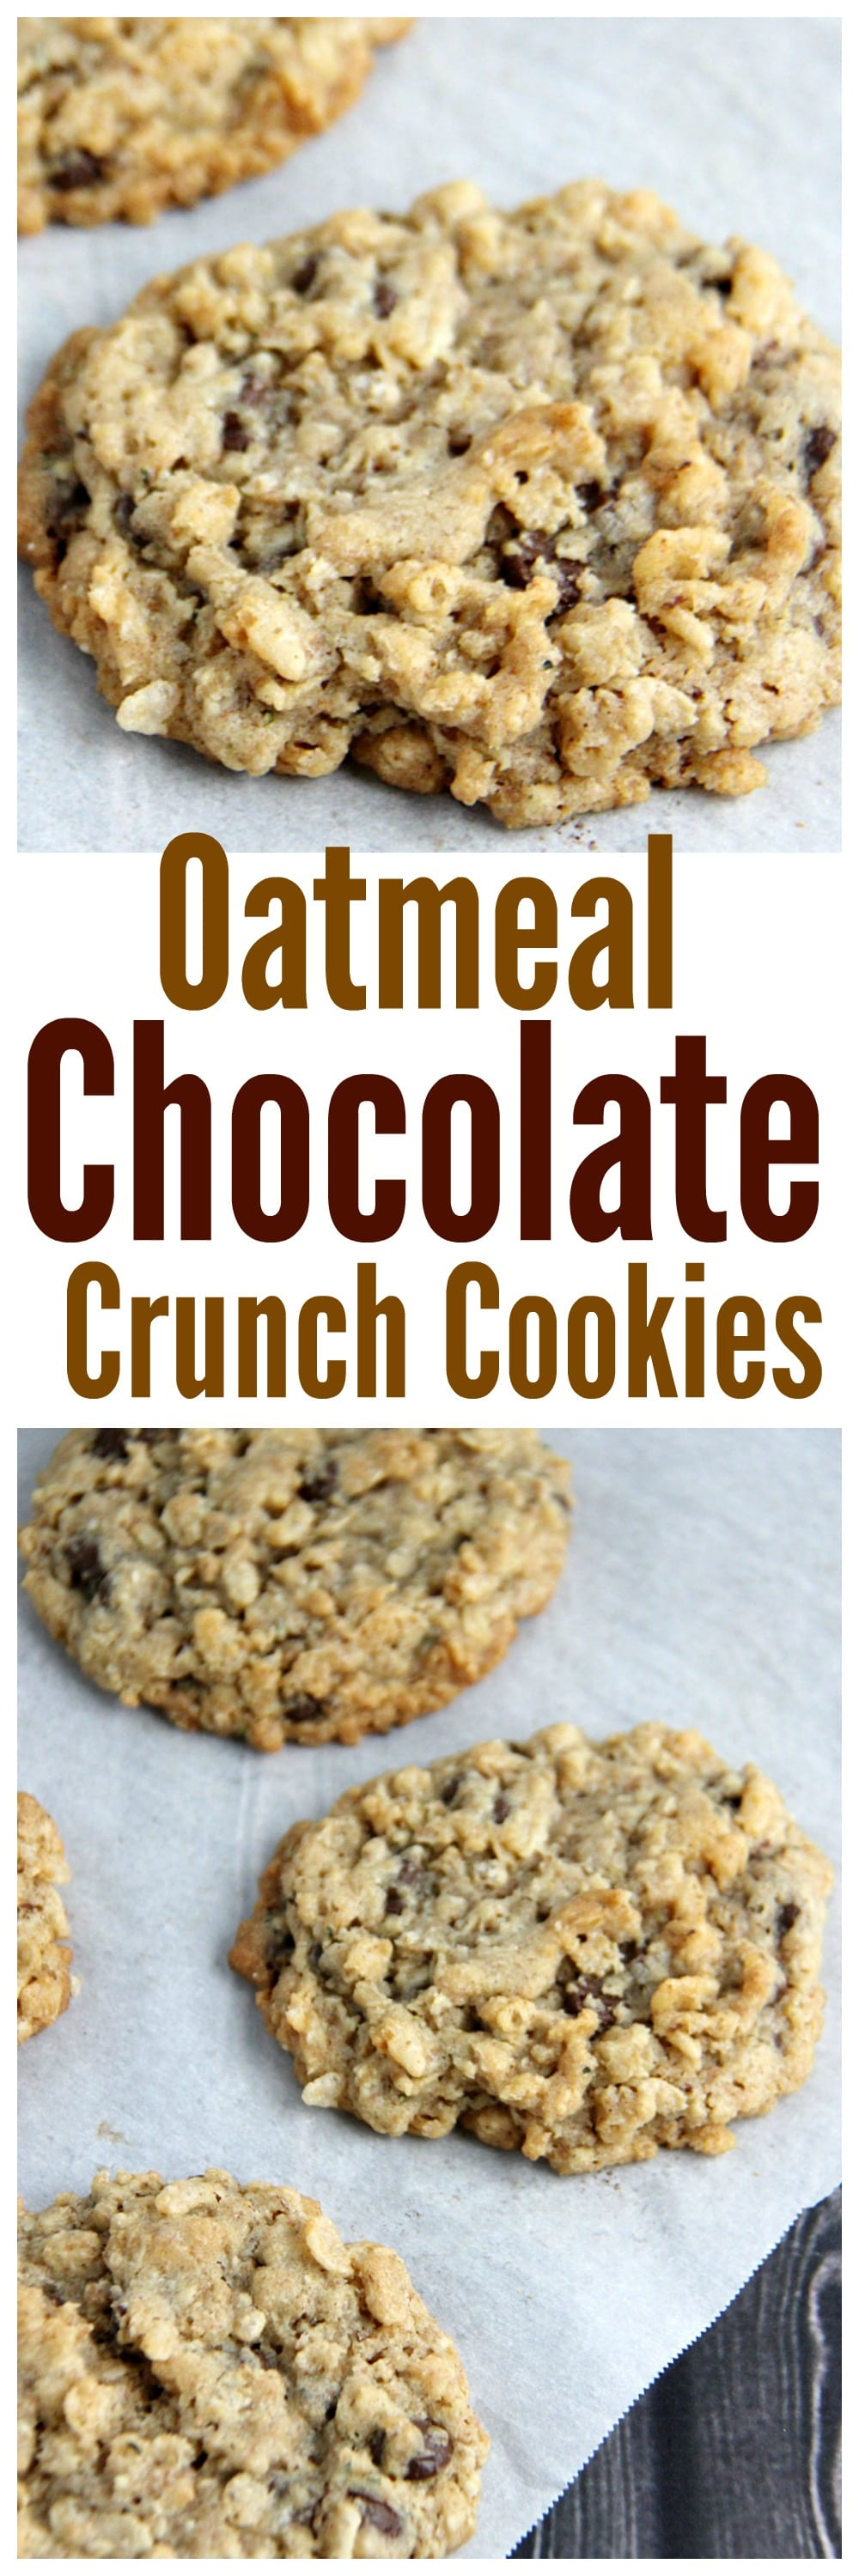 Oatmeal Chocolate Crunch Cookies